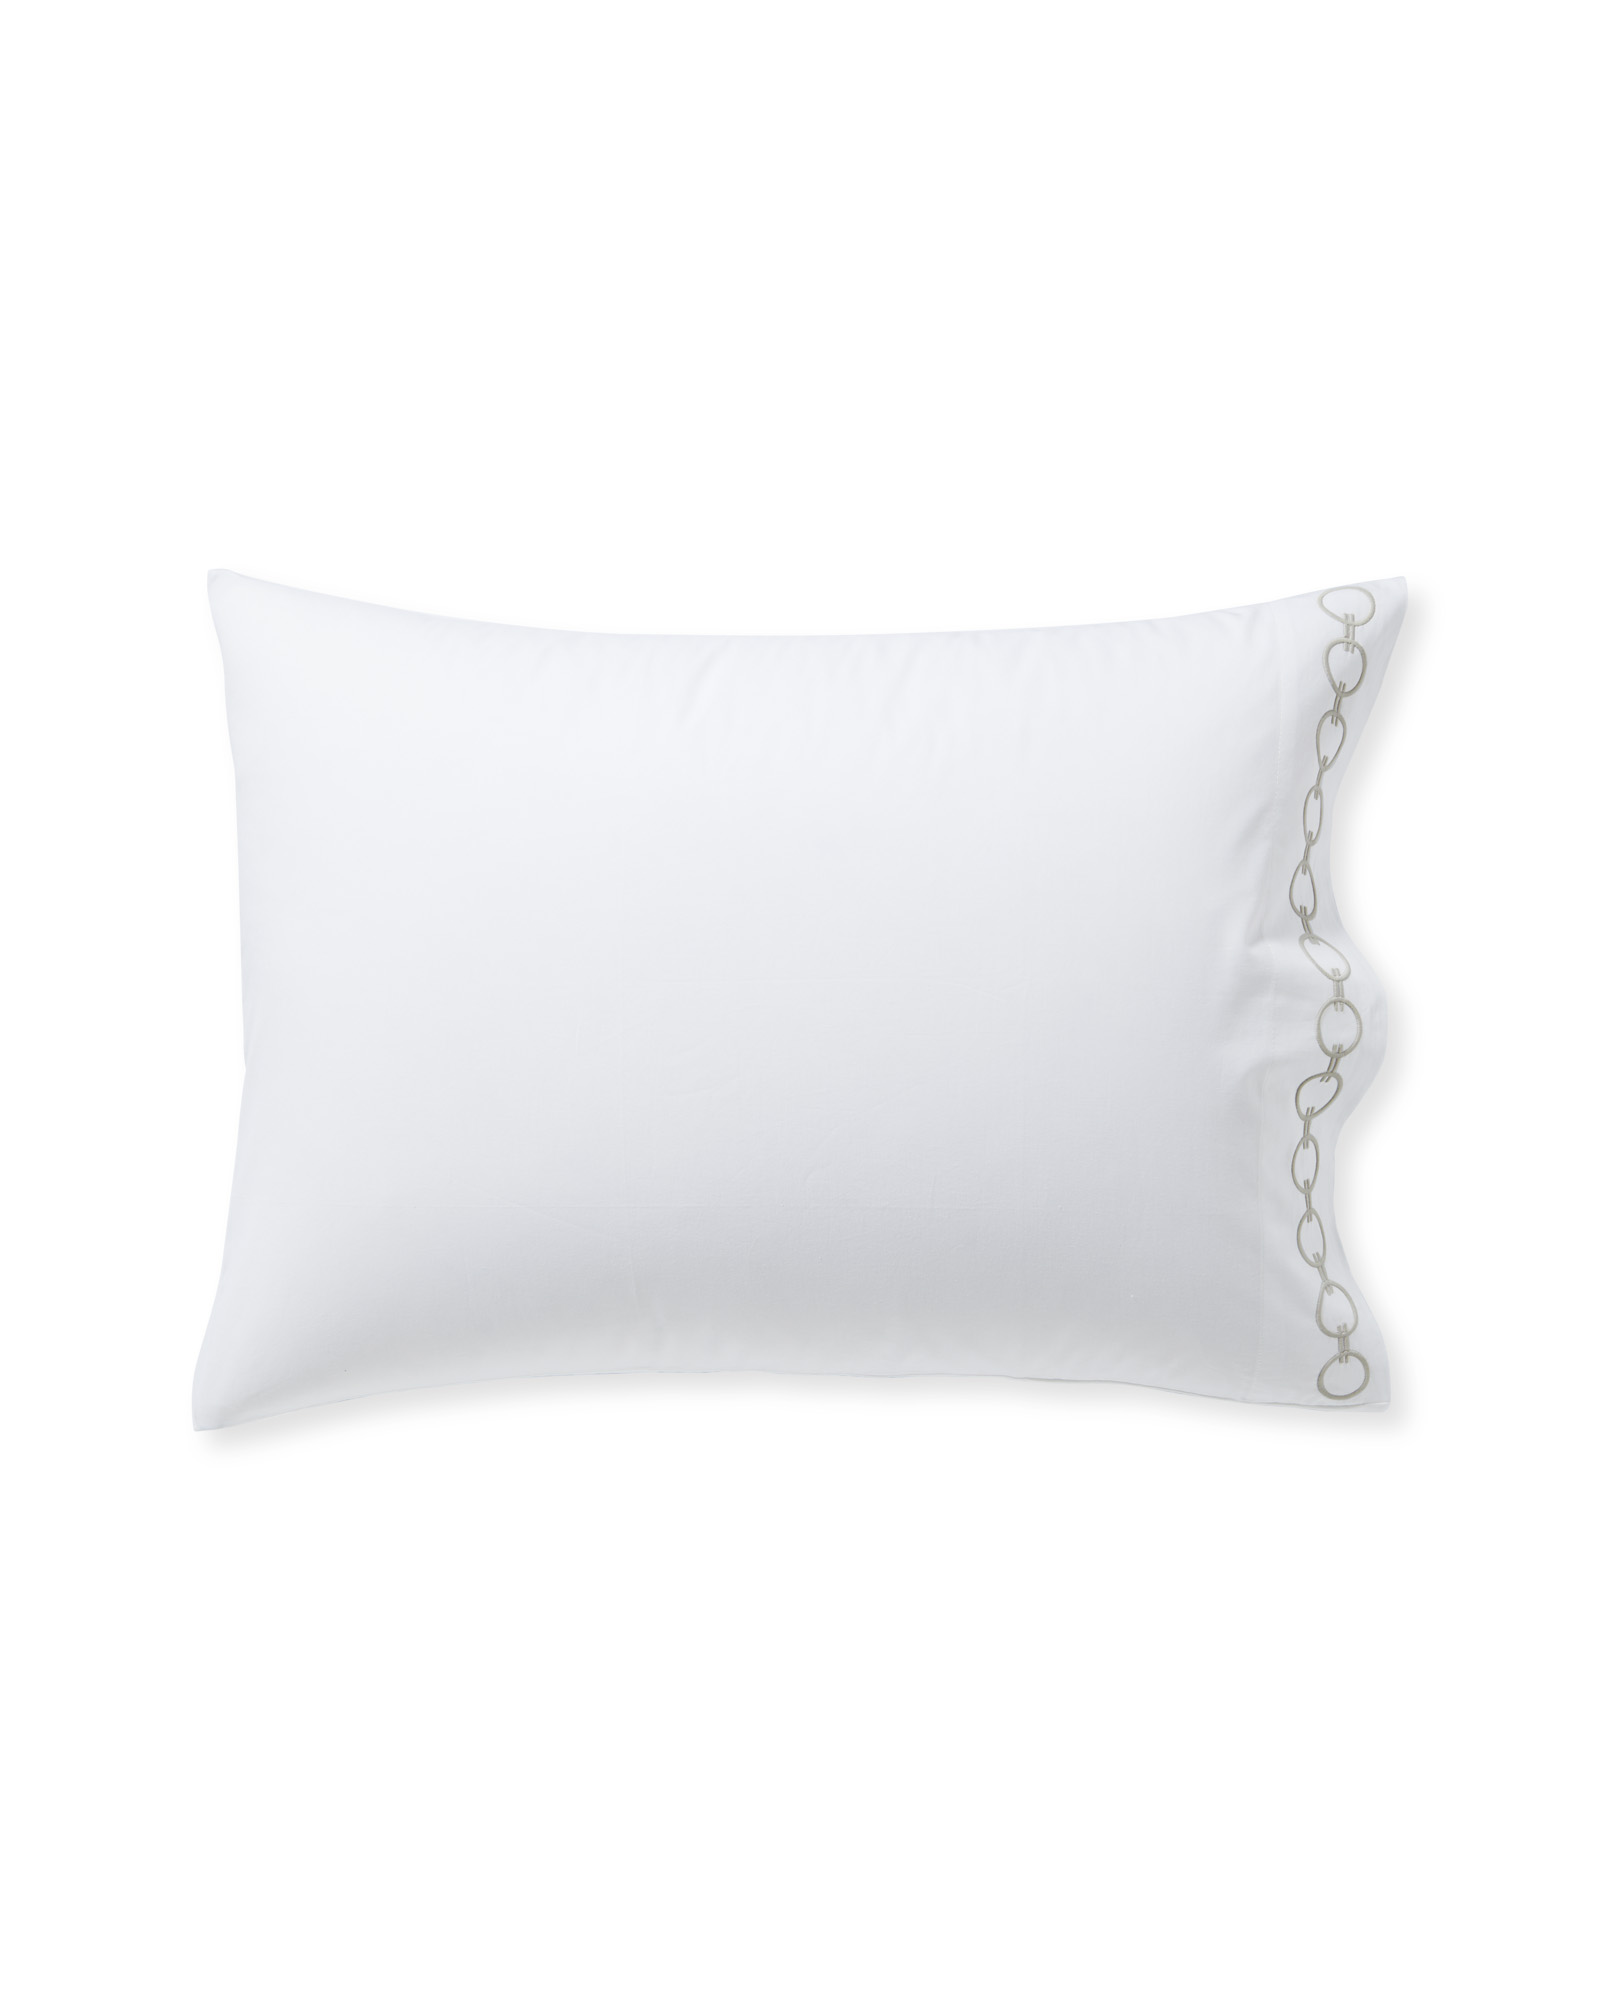 Bel Air Pillowcases (Extra Set of 2), Sand